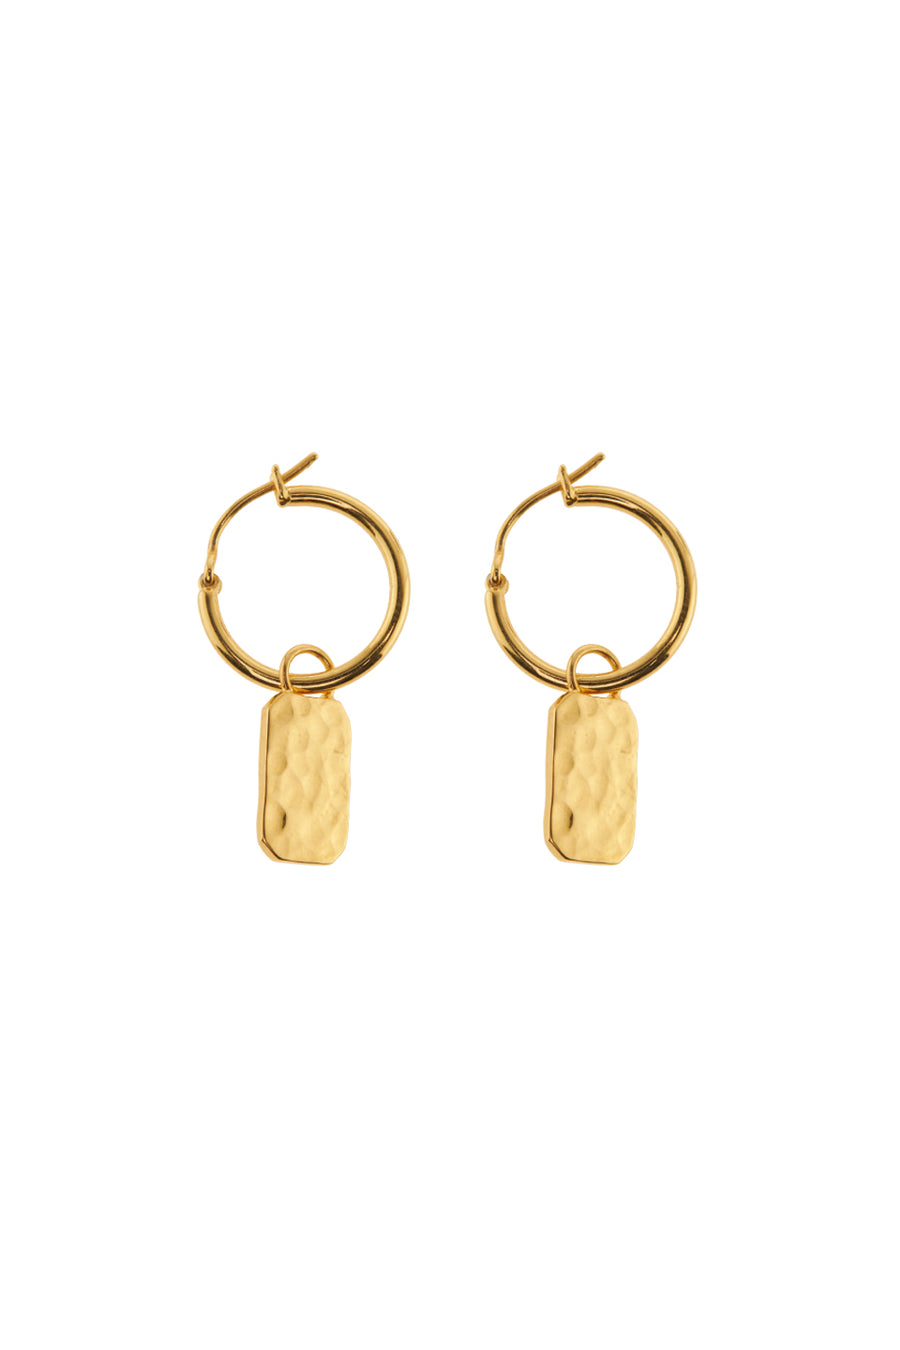 Xzota | Oorbellen | Tag hammered | Gold plated